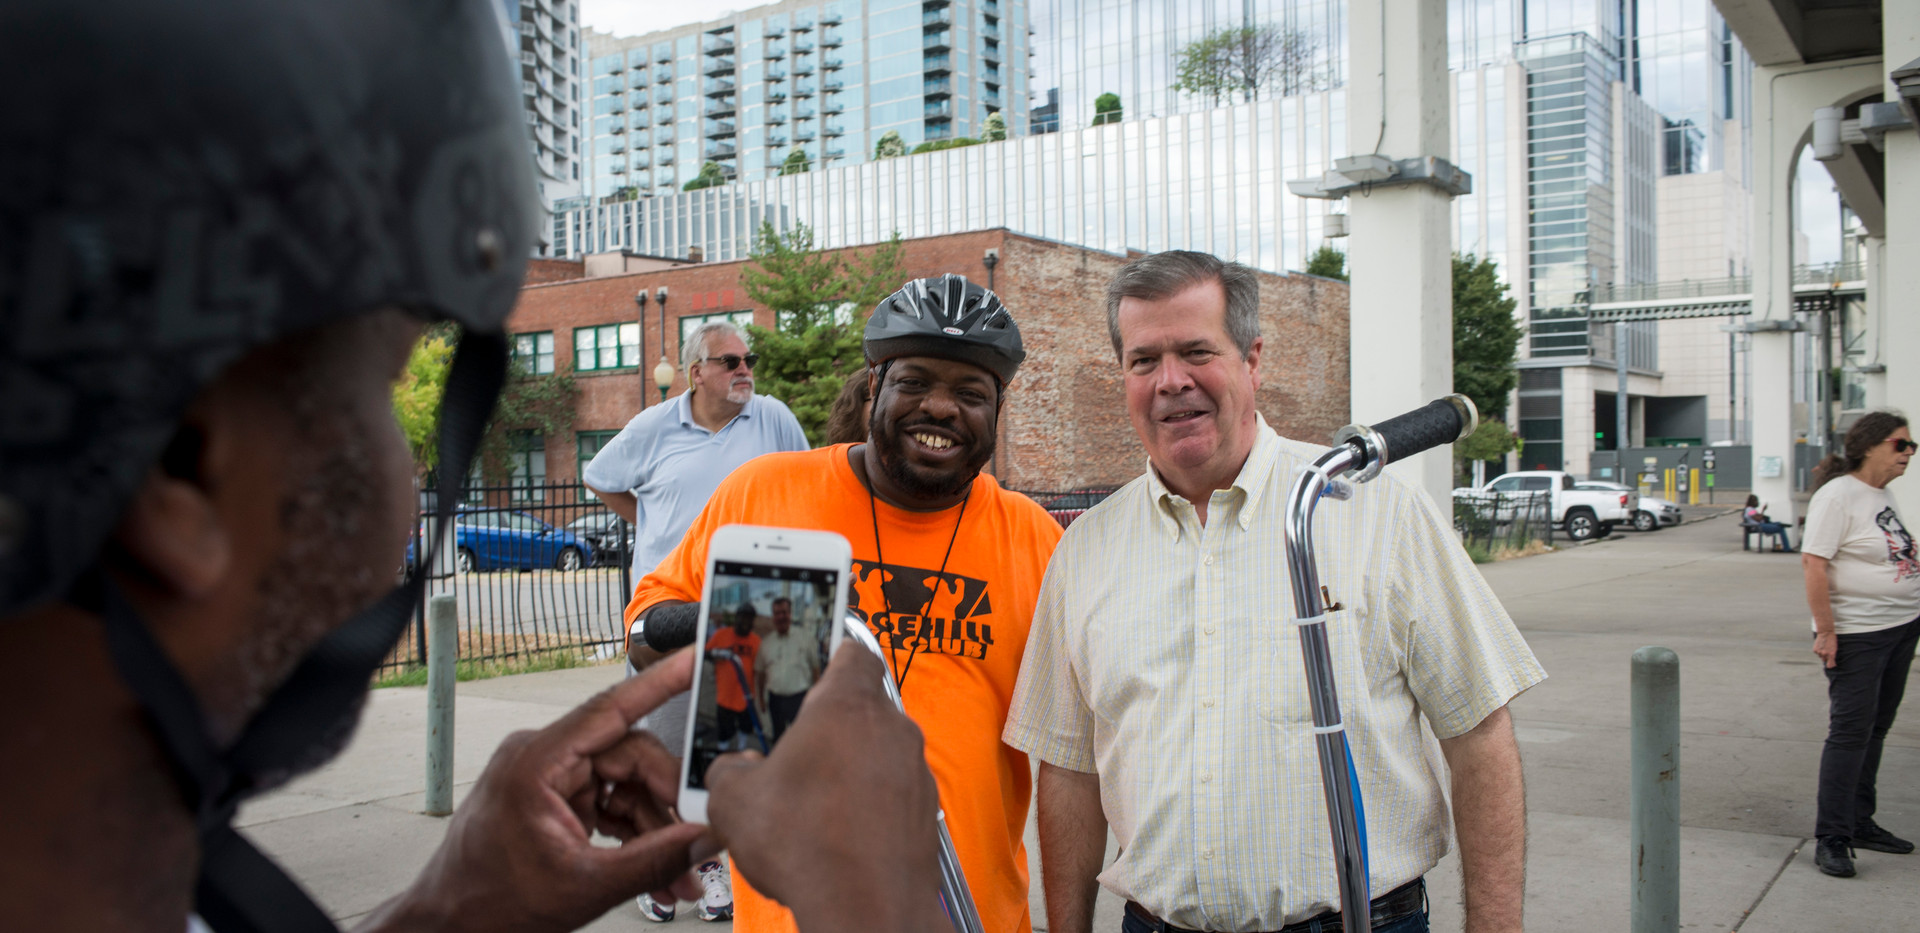 Key poses with former mayor of Nashville, Karl Dean. Despite reaching out to politicians and other city leaders, Key has gotten minimal support from the city.